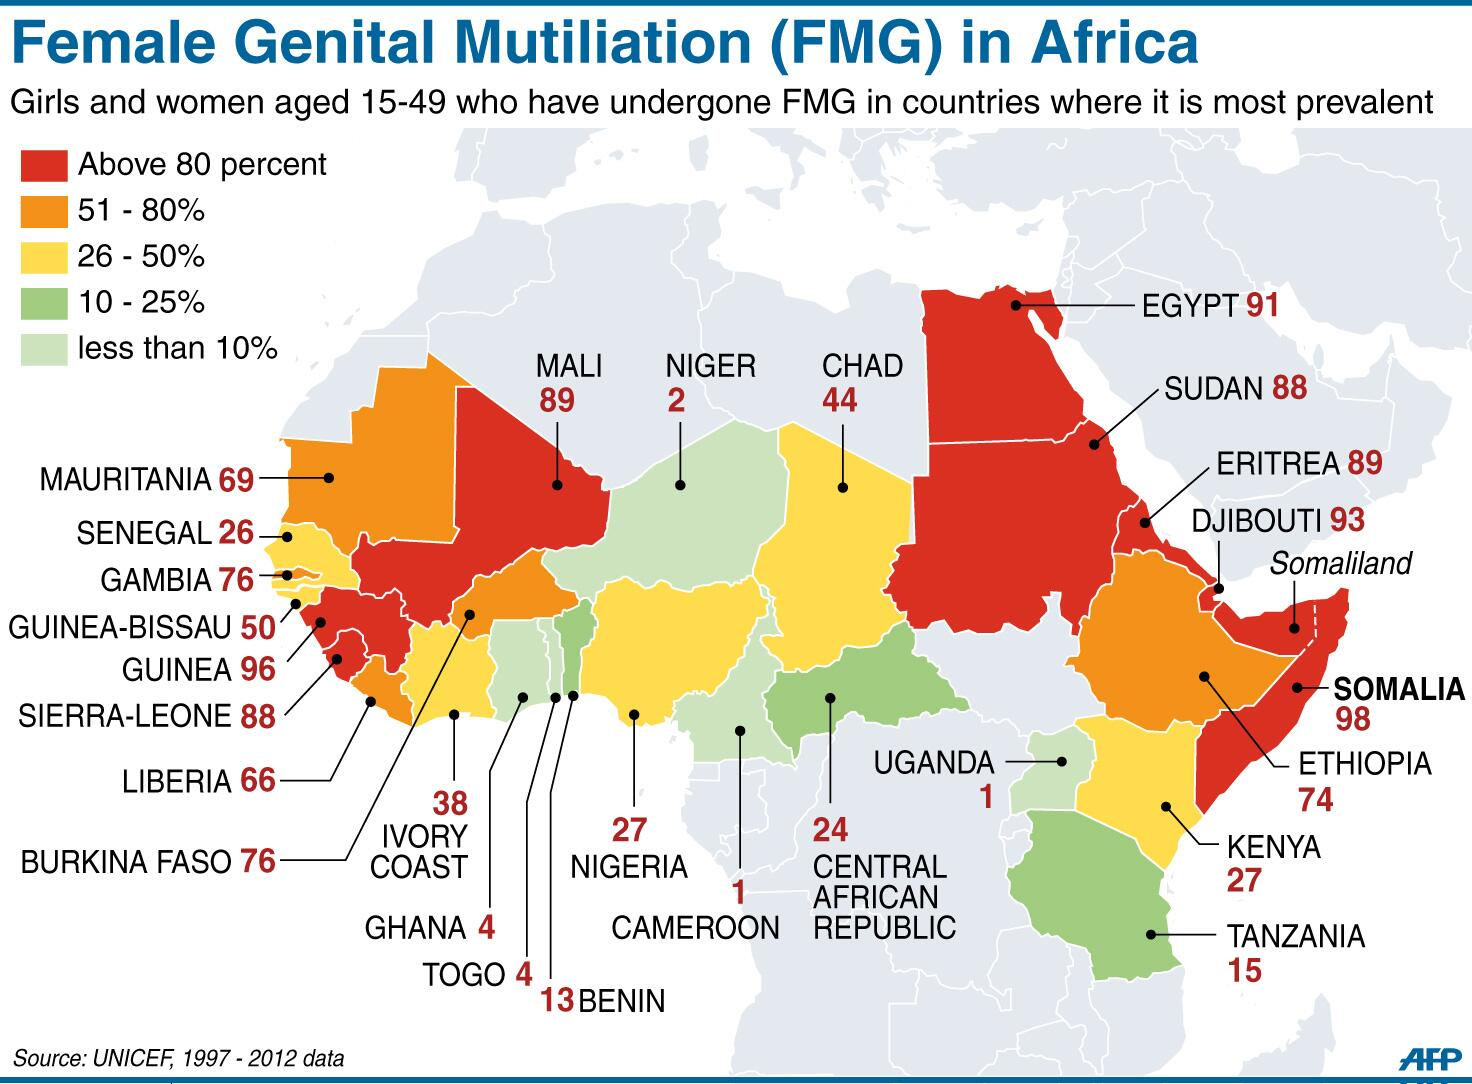 an analysis of female circumcision in africa Female genital mutilation in africa an analysis of current abandonment approaches december 2005 acs plaza, 4th floor, lenana road po box 76634, nairobi, 00508.